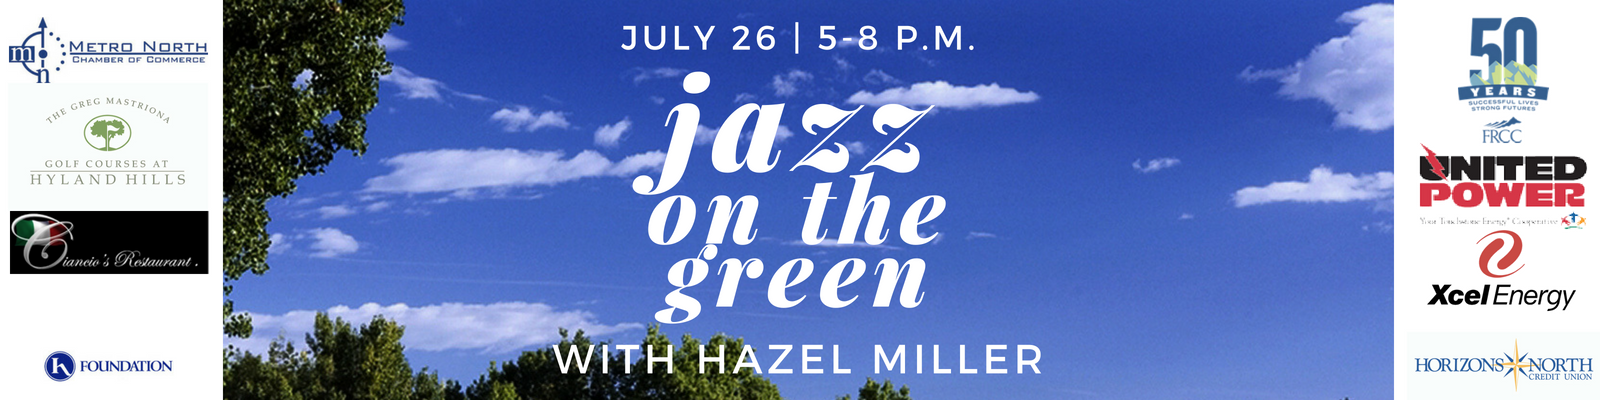 Jazz-on-the-Green-2018-web-banner(1).png